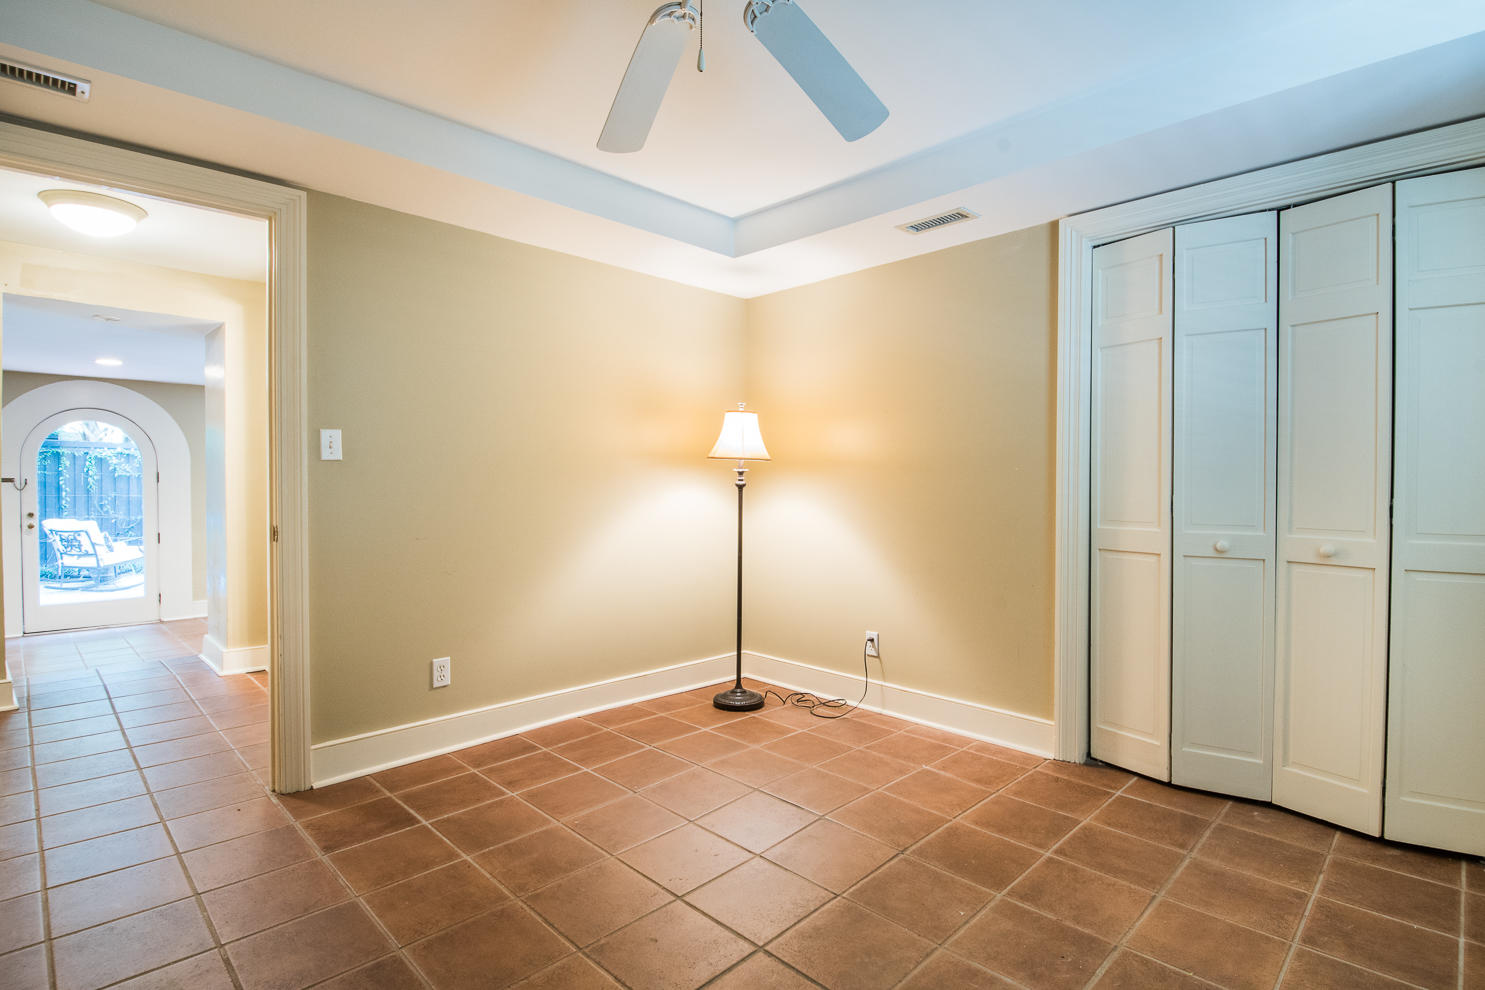 South of Broad Homes For Sale - 1 Prices, Charleston, SC - 59